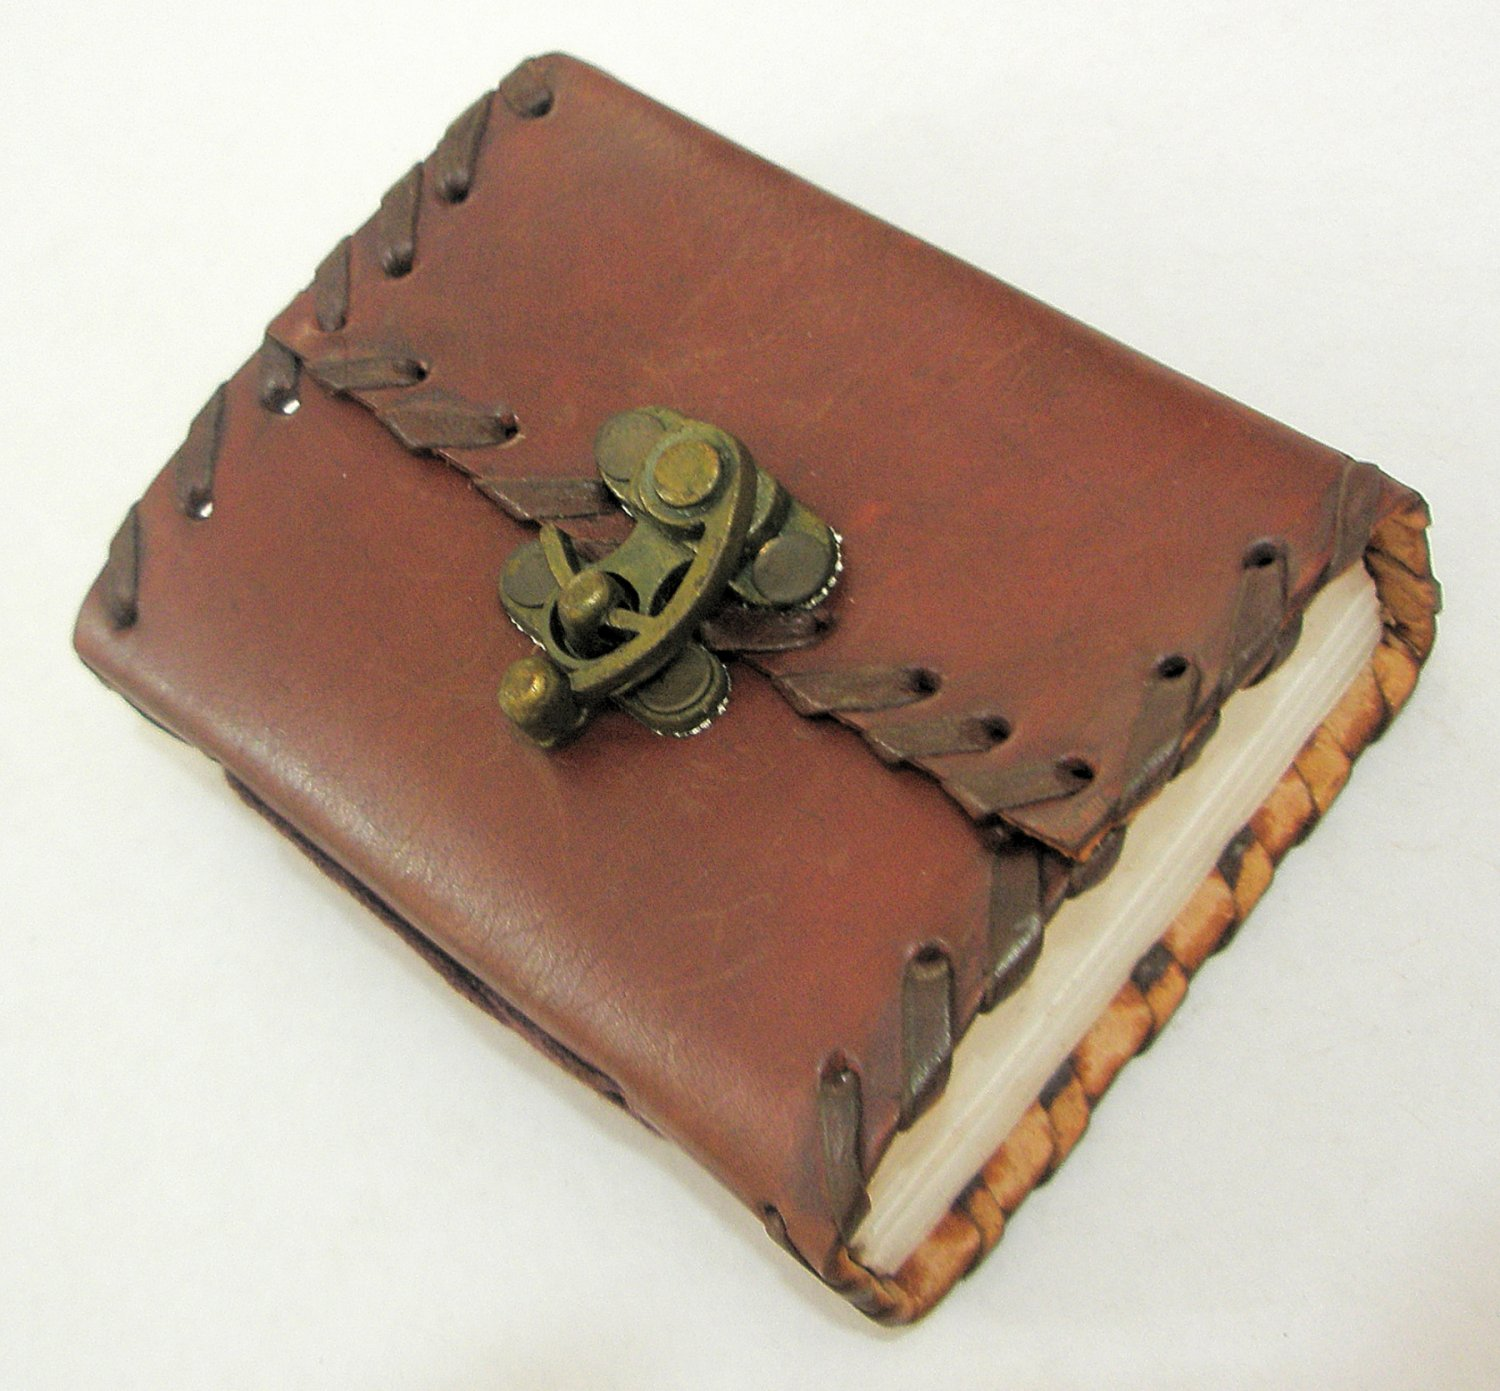 Handmade Paper Rustic Leather Mini Pocket Journal Blank Vintage Diary Writing Notebook